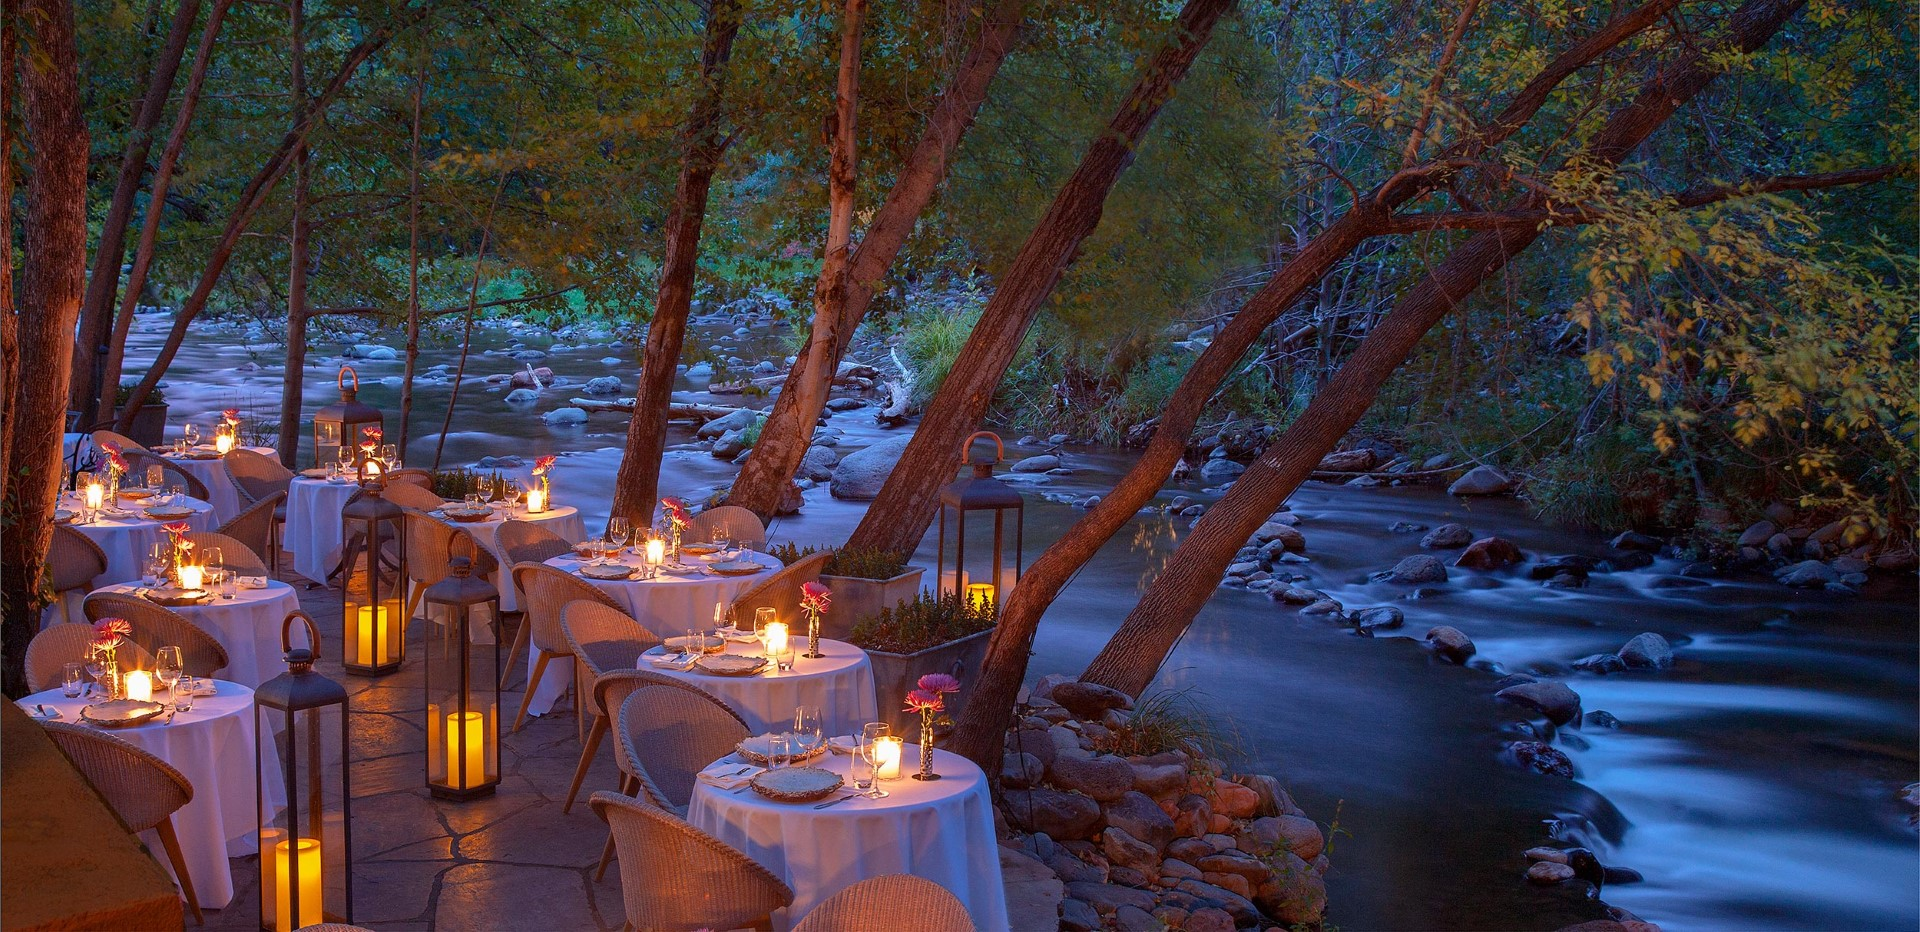 Romantic, cozy, and impeccable are words that only begin to describe Cress on Oak Creek, Sedona's premiere dining destination and part of L'Auberge de Sedona. For dinner, select from a three- or four-course menu. The resort's Etch Kitchen/Bar also serves dinner, along with breakfast and lunch. Photo courtesy L'Auberge de Sedona.